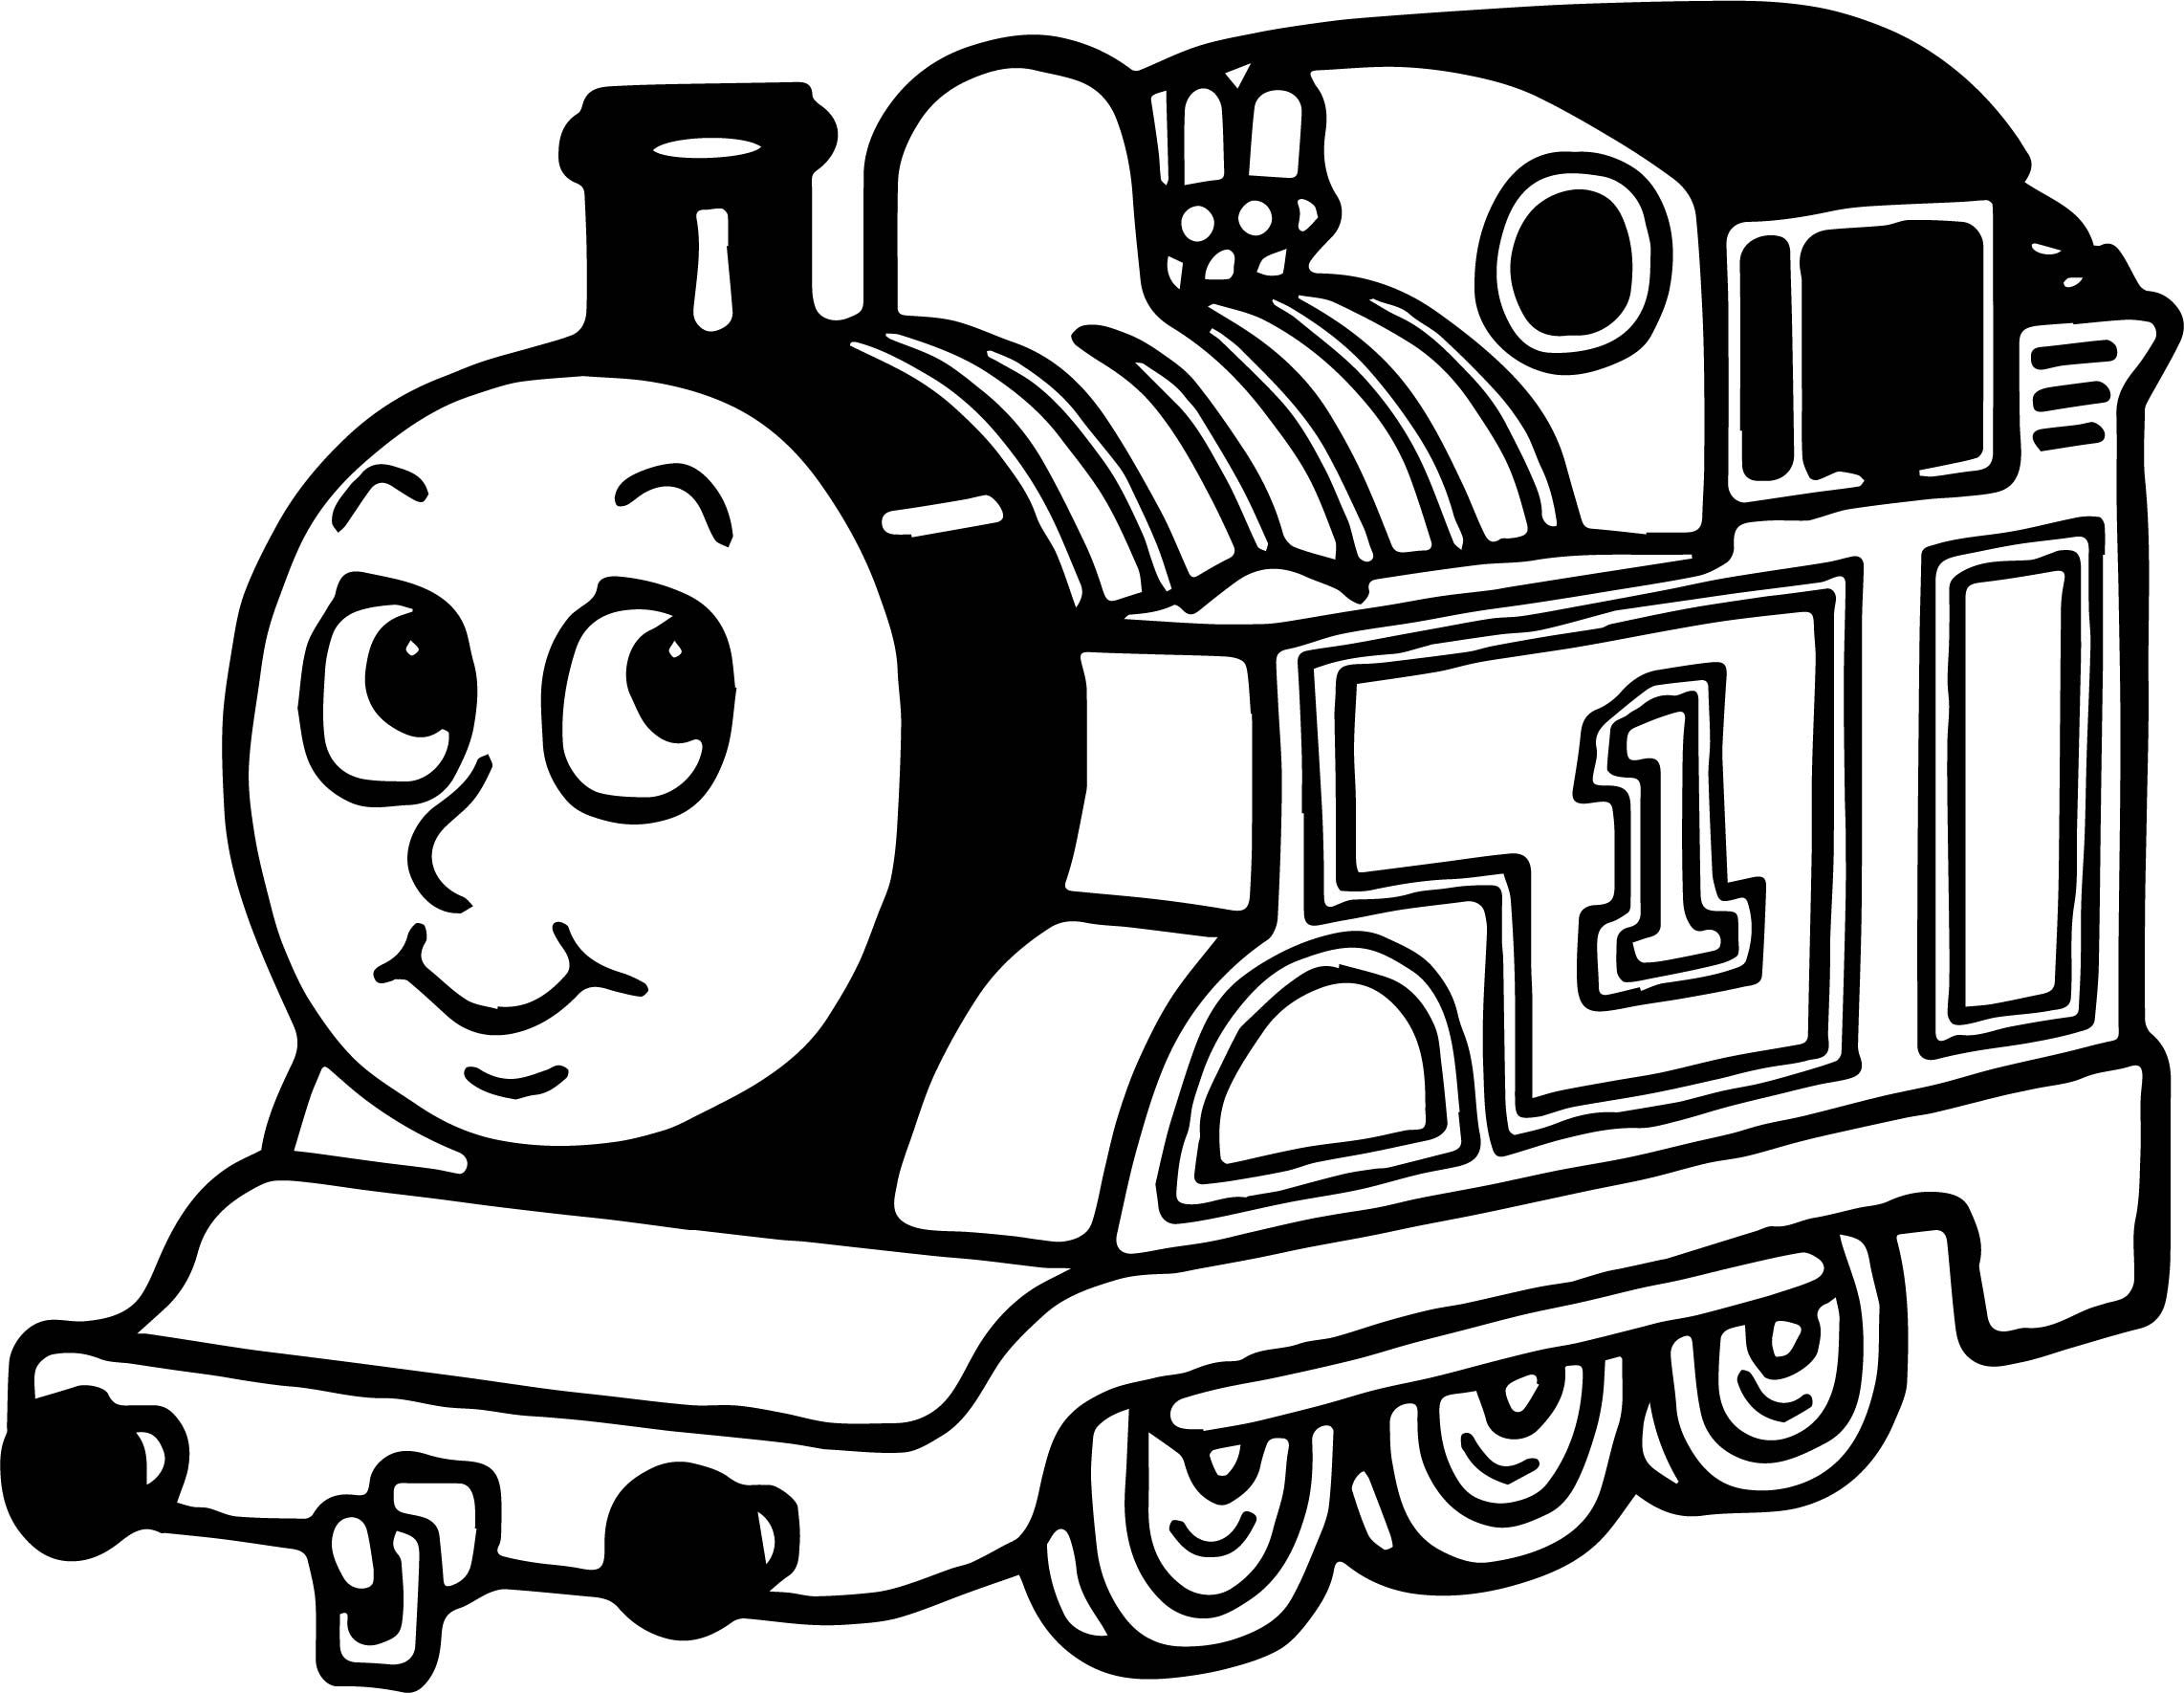 Cool Cartoon One Train Coloring Page Train Coloring Pages Turtle Coloring Pages Coloring Pages